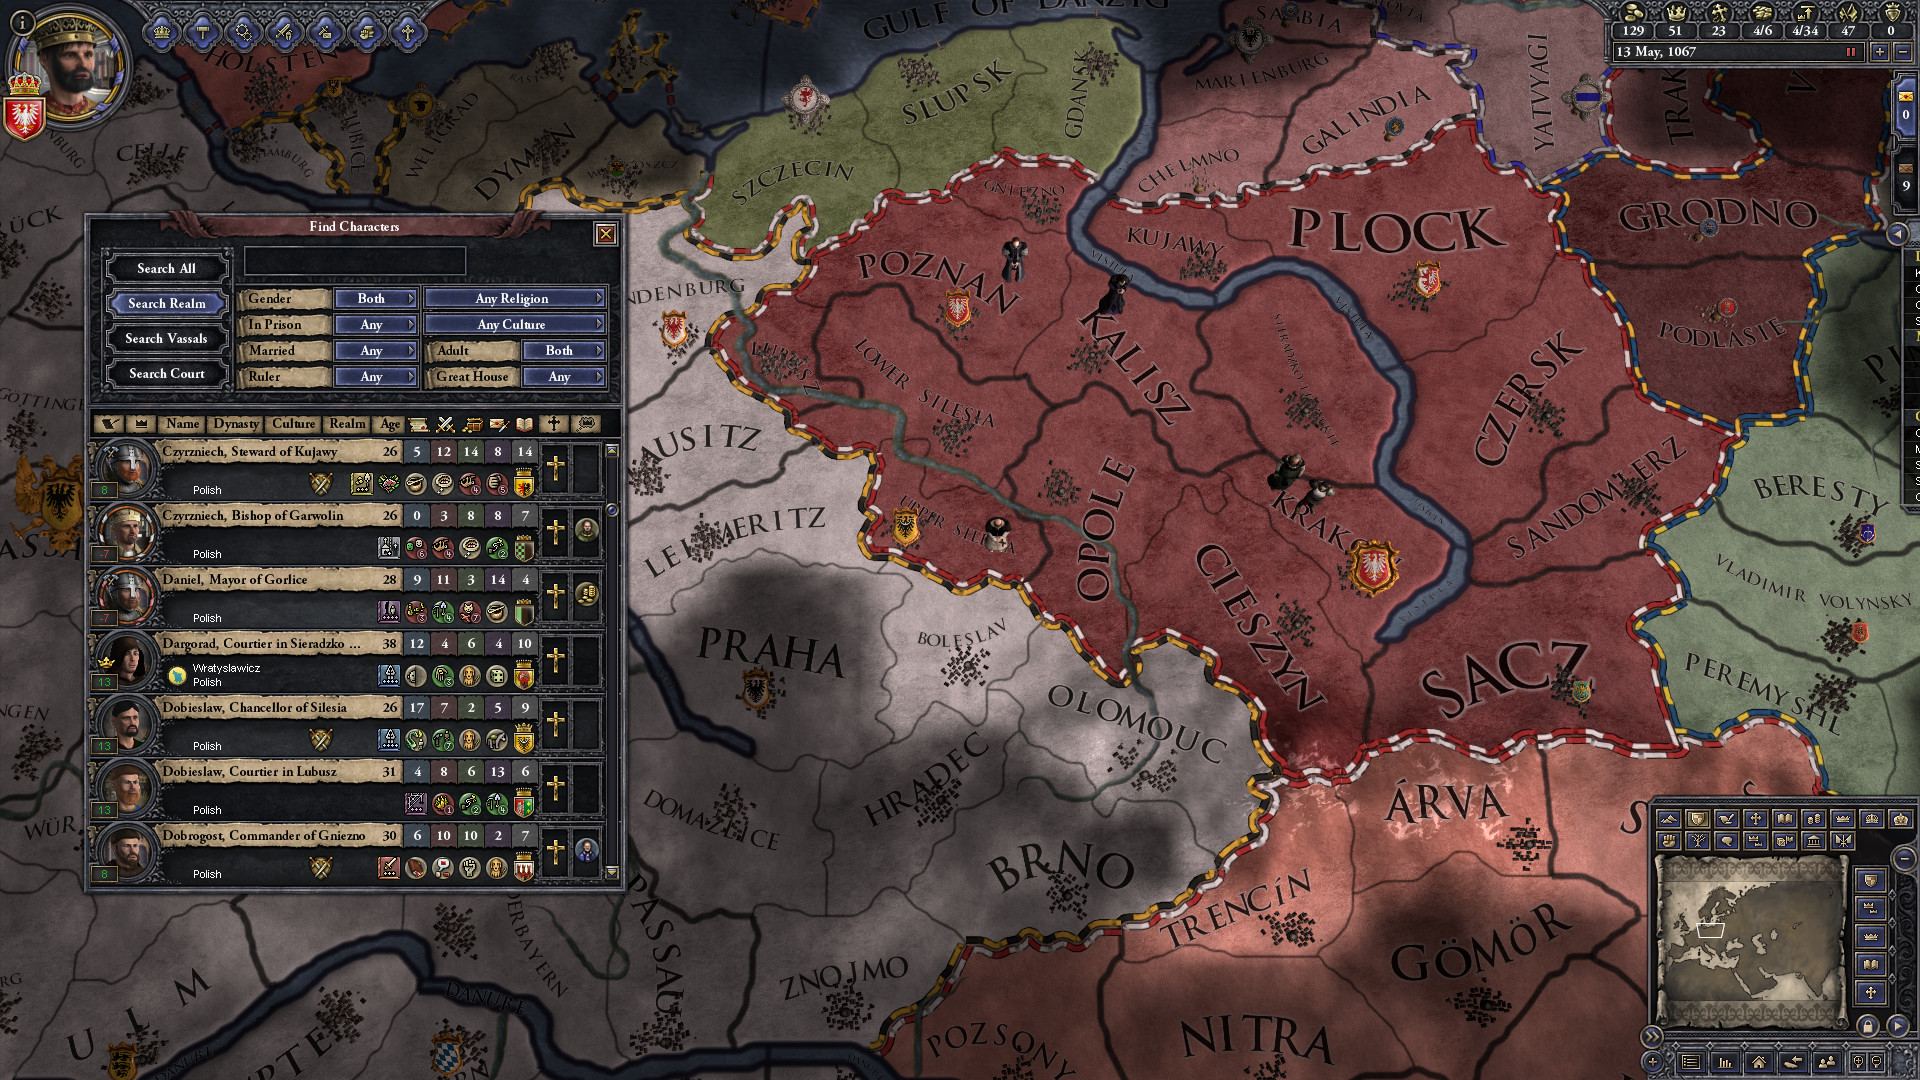 Here's a feature breakdown for Crusader Kings 2's biggest expansion